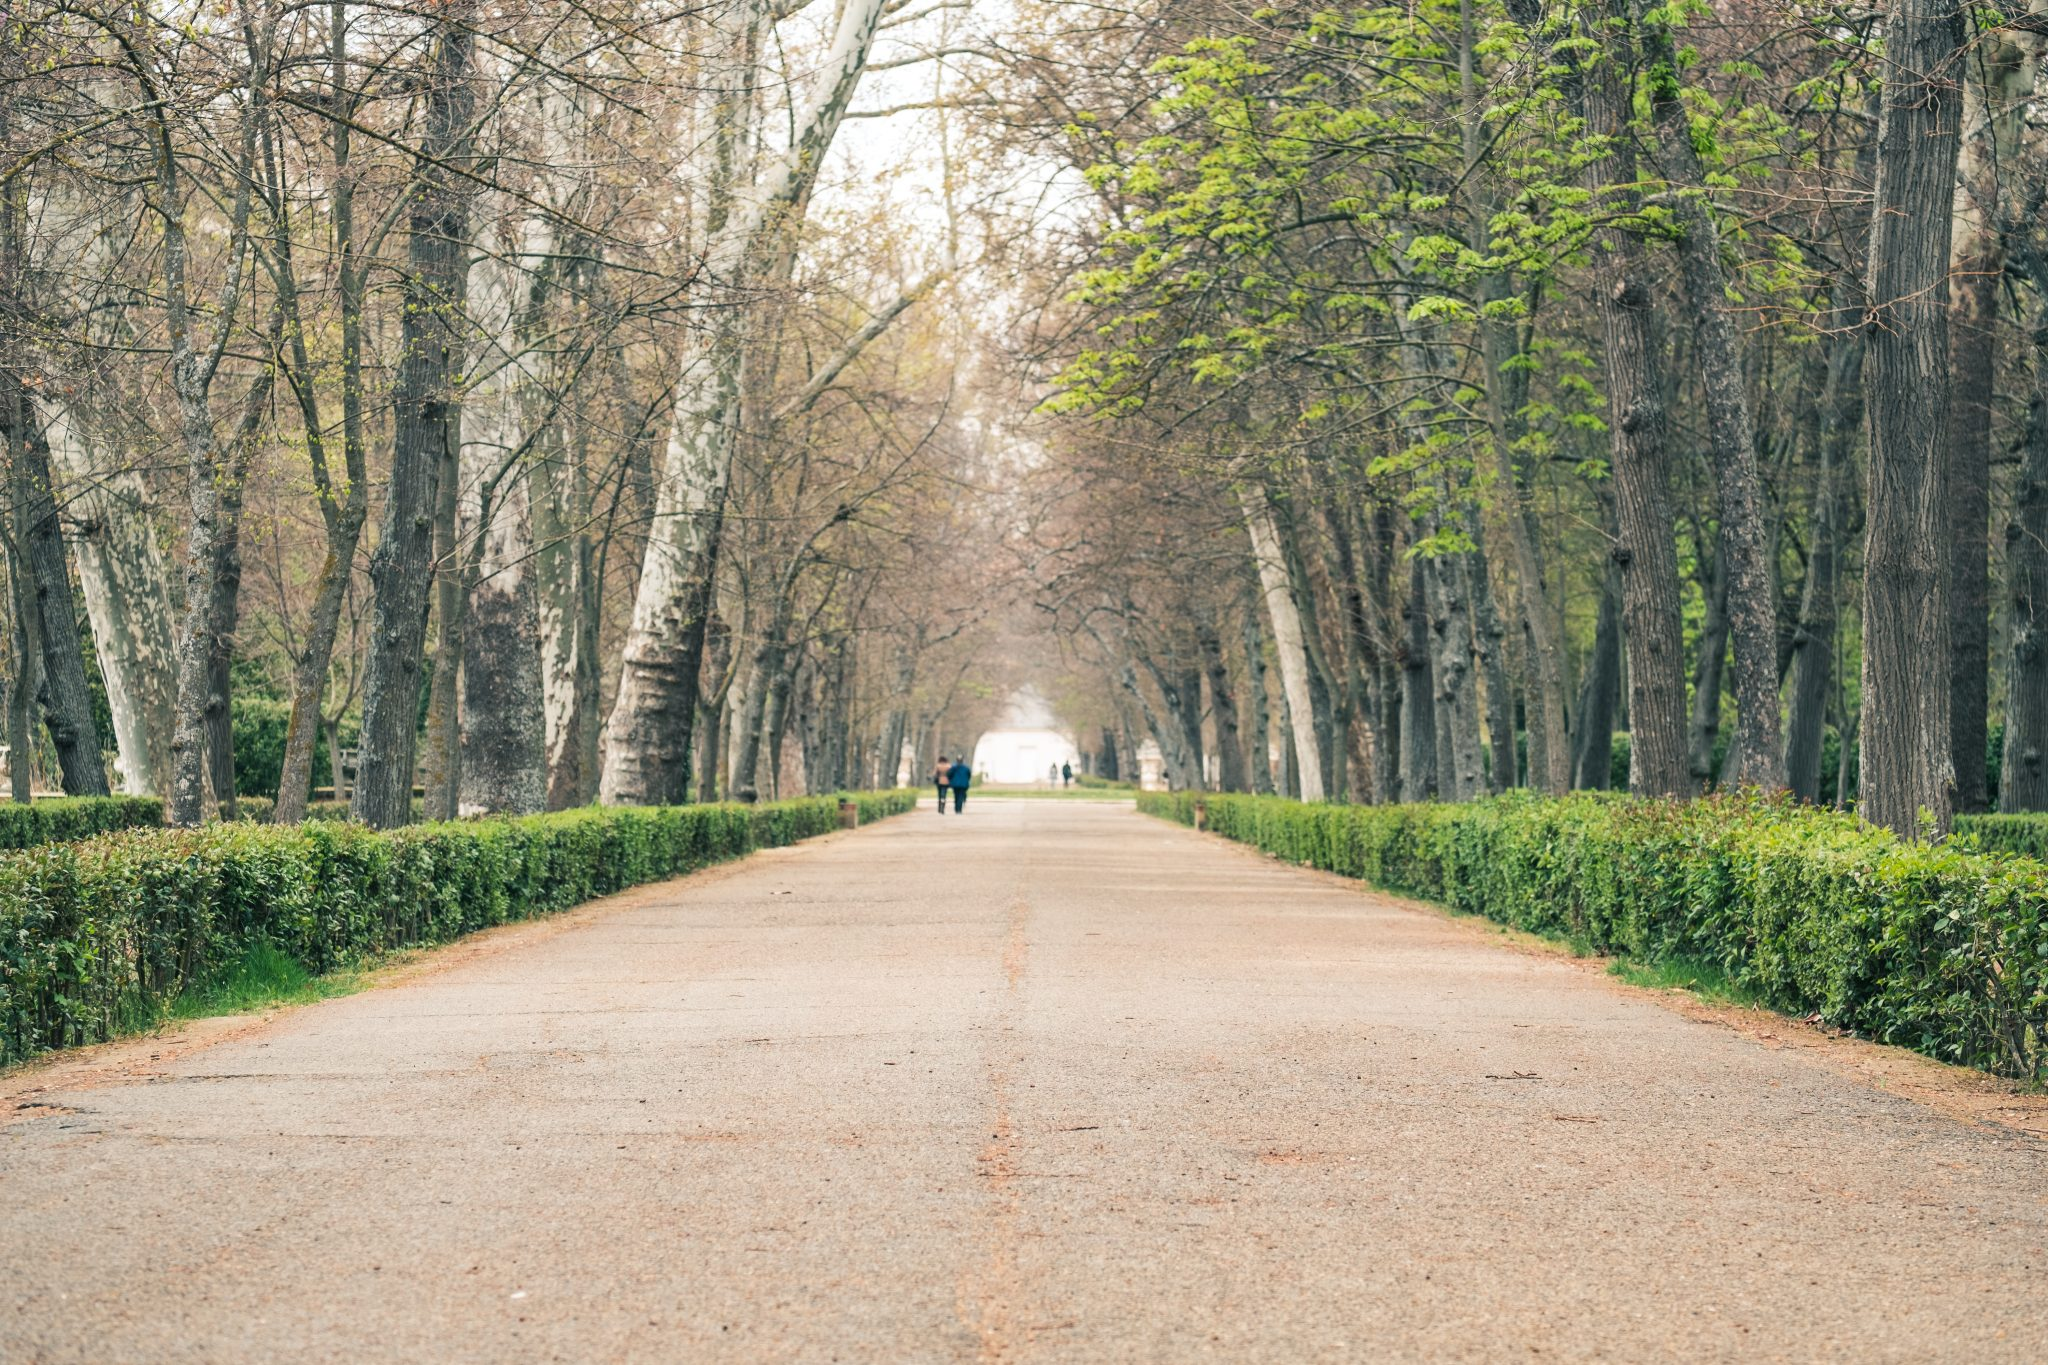 Walkway in the garden of Aranjuez photo by Jo Kassis